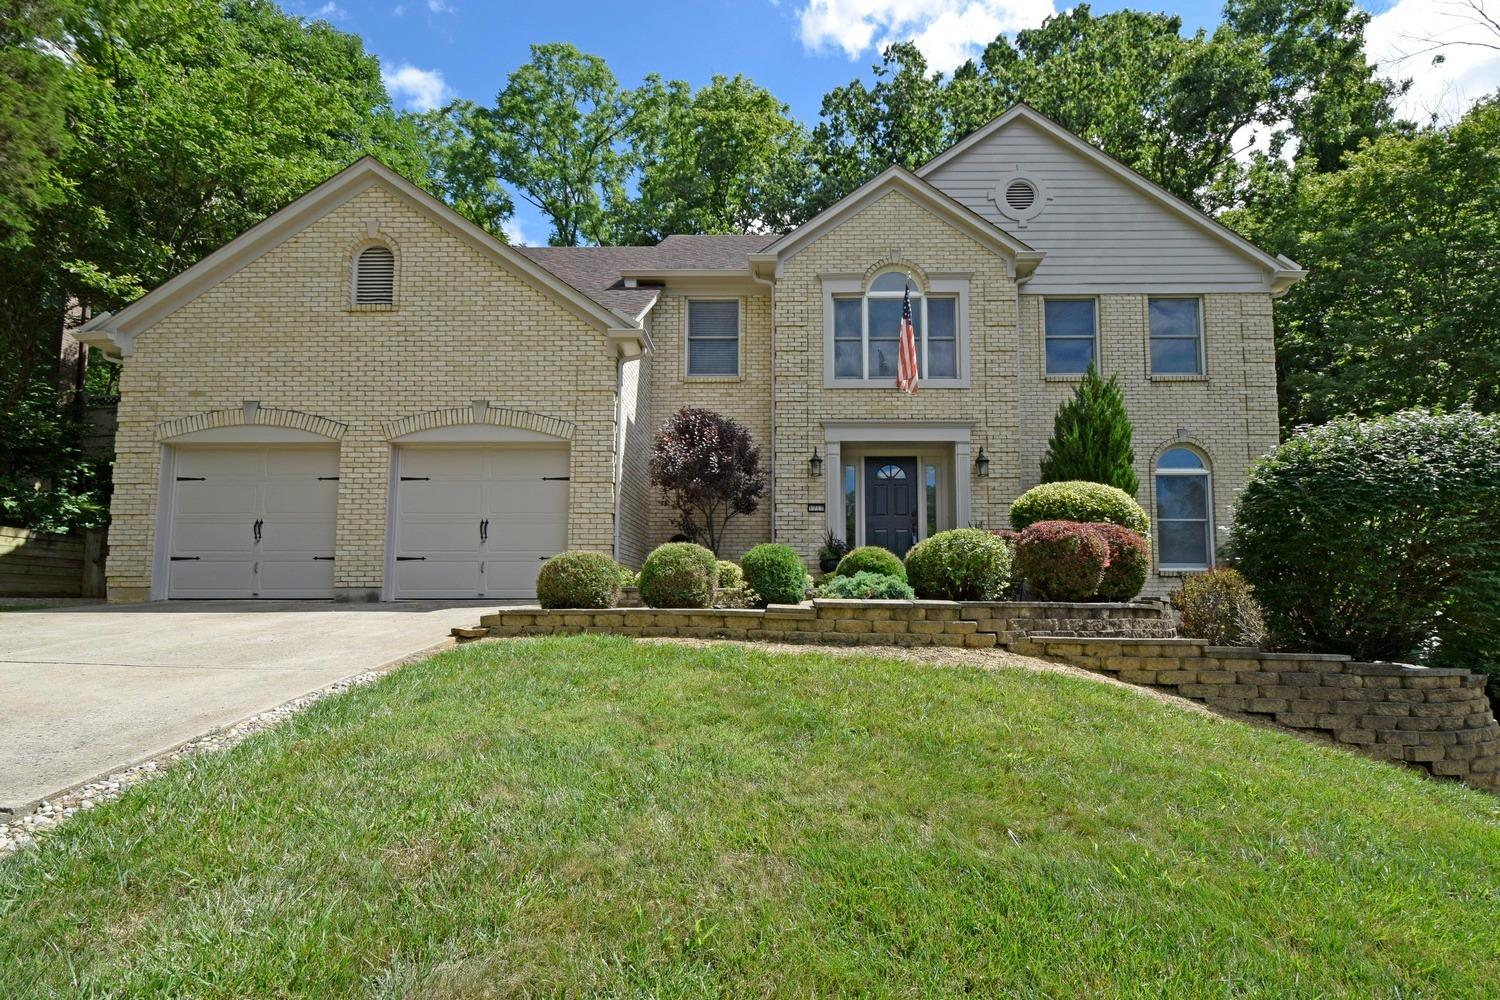 1717 Cottontail Drive, Miami Twp, OH 45150